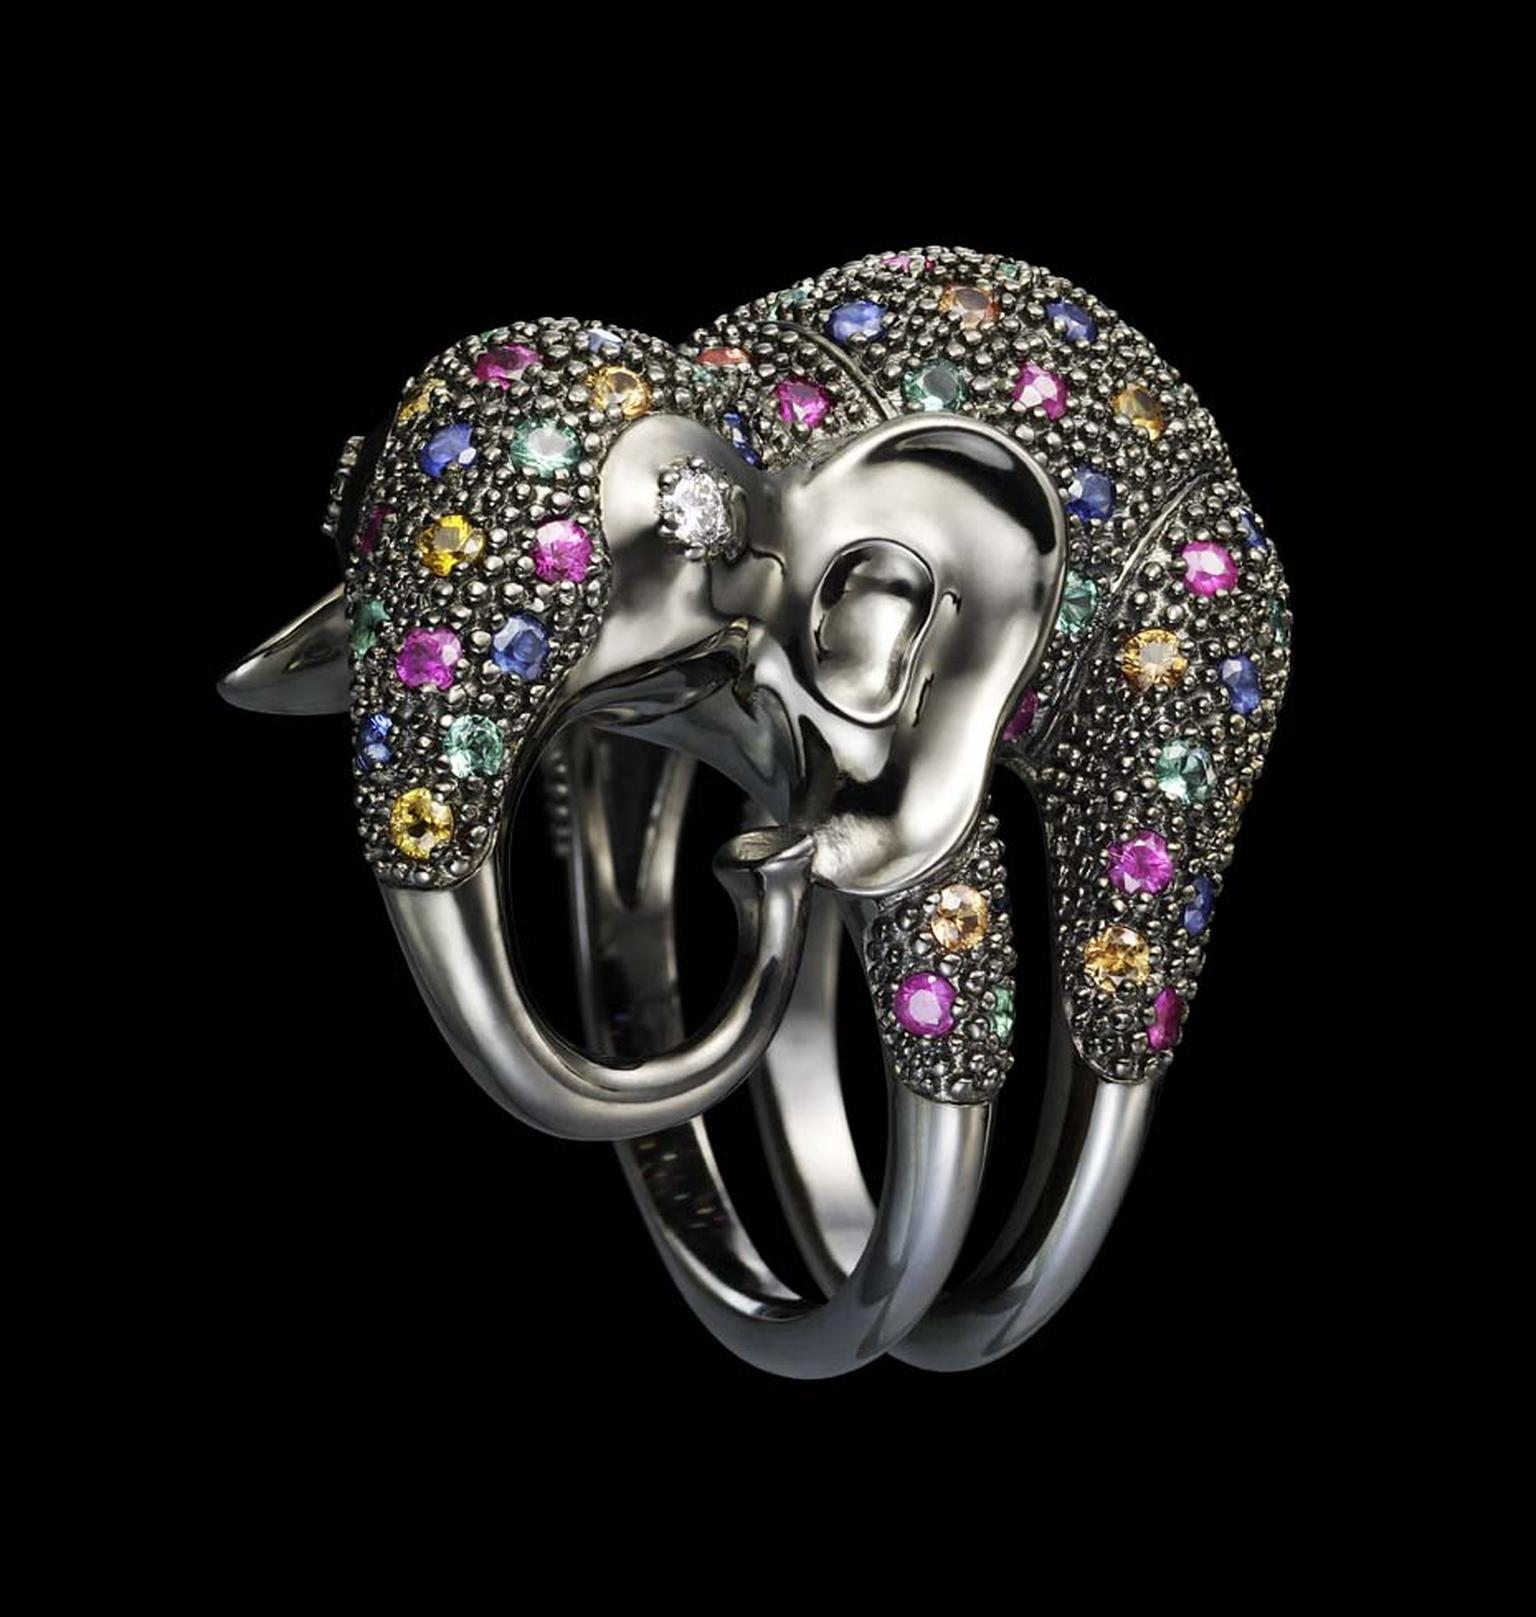 Dashi Namdakov Elephant ring in white gold and black rhodium with diamonds, sapphires, rubies and emeralds.